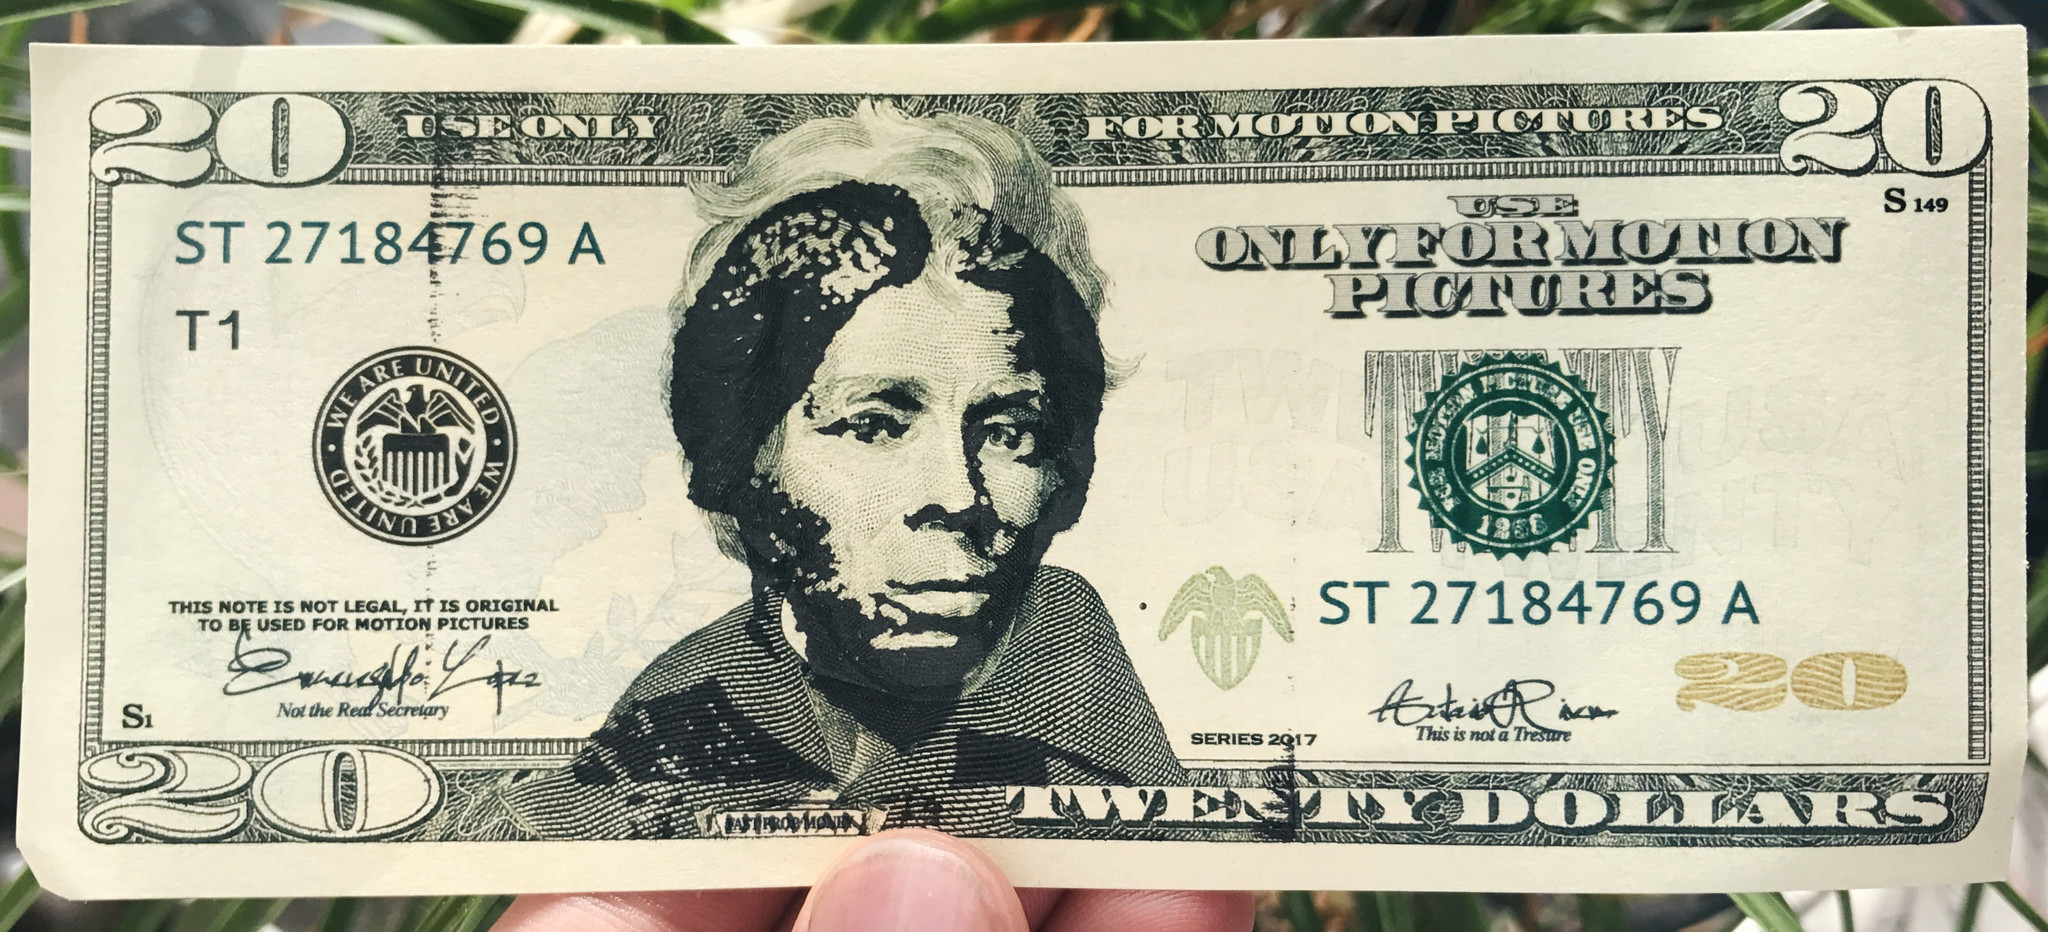 Harriet Tubman is appearing on $20 bills, whether Trump officials like it or not